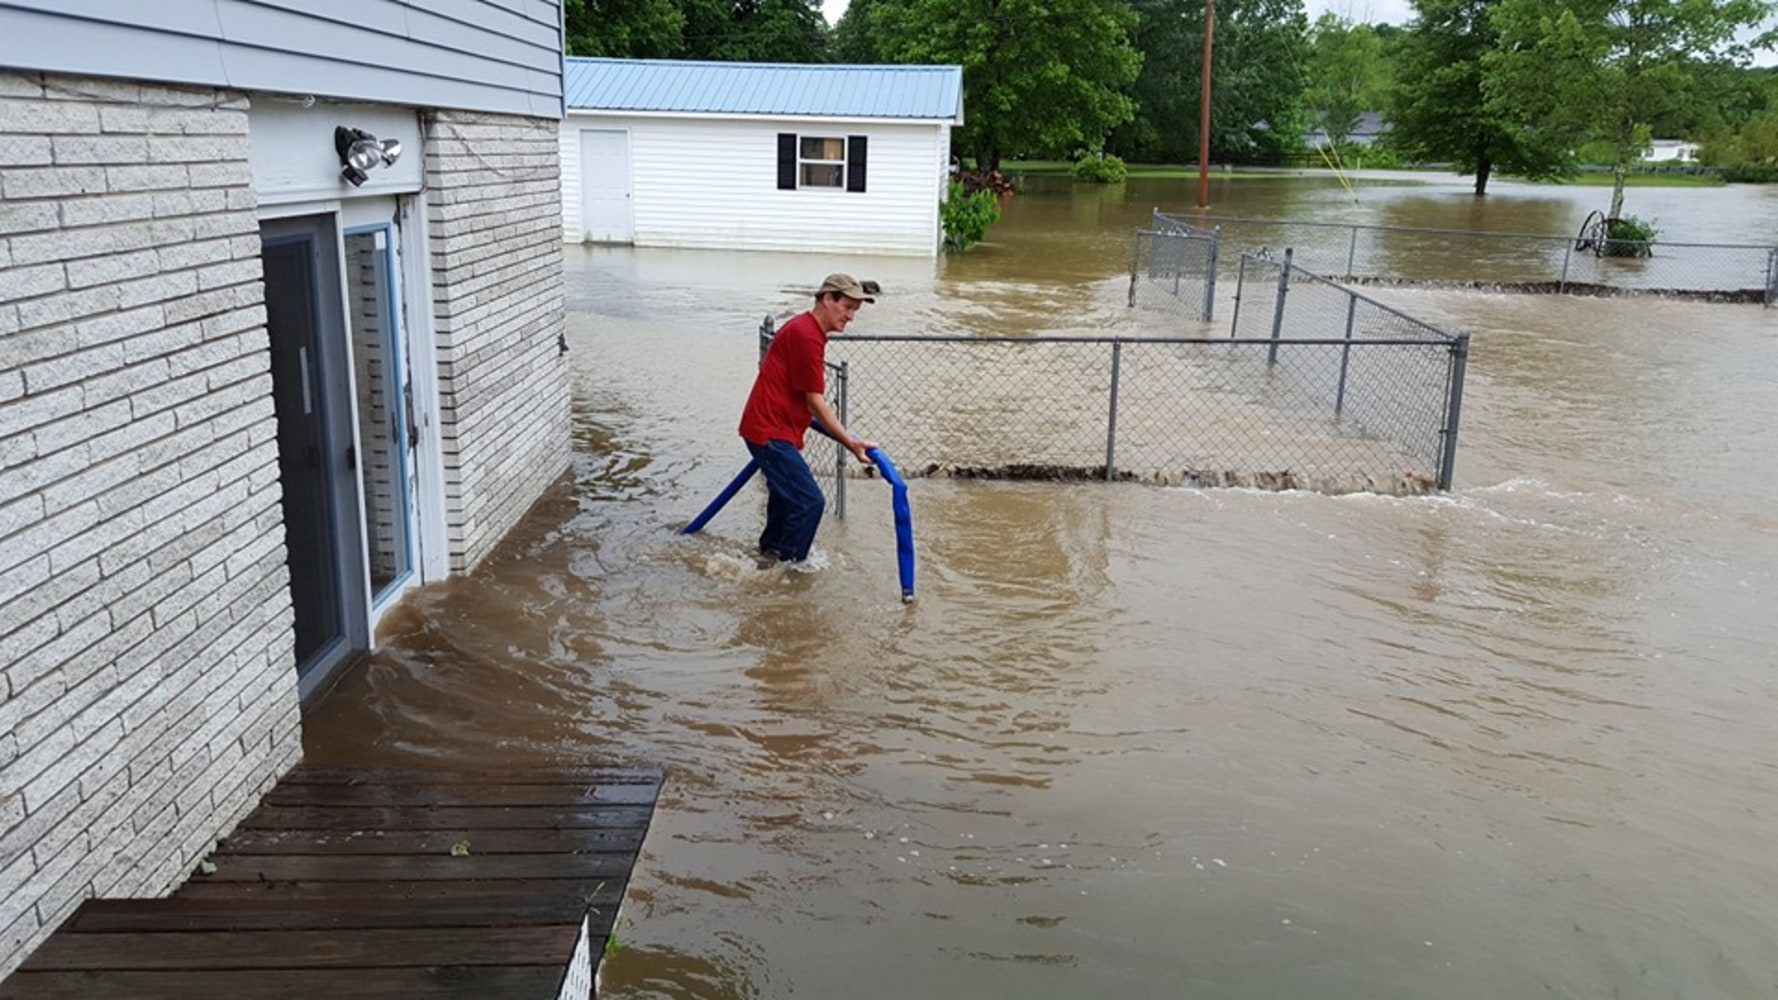 Flood waters drenched a home Thursday in Cottle, West Virginia. Monica ...